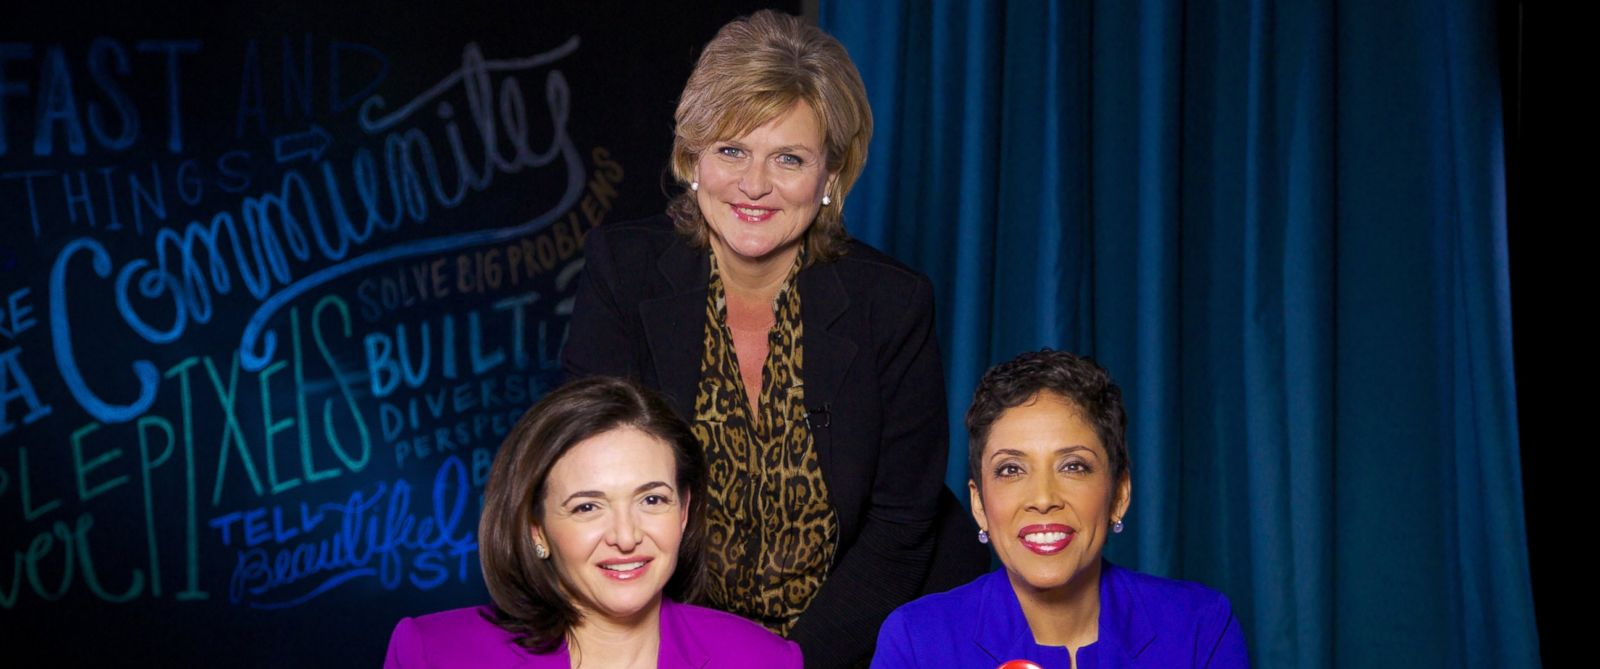 """PHOTO: """"Nightlines"""" Cynthia McFadden interviews Facebook COO Sheryl Sandberg and CEO of Girl Scouts USA Anna Marie Chávez about their new public service campaign, """"Ban Bossy."""""""